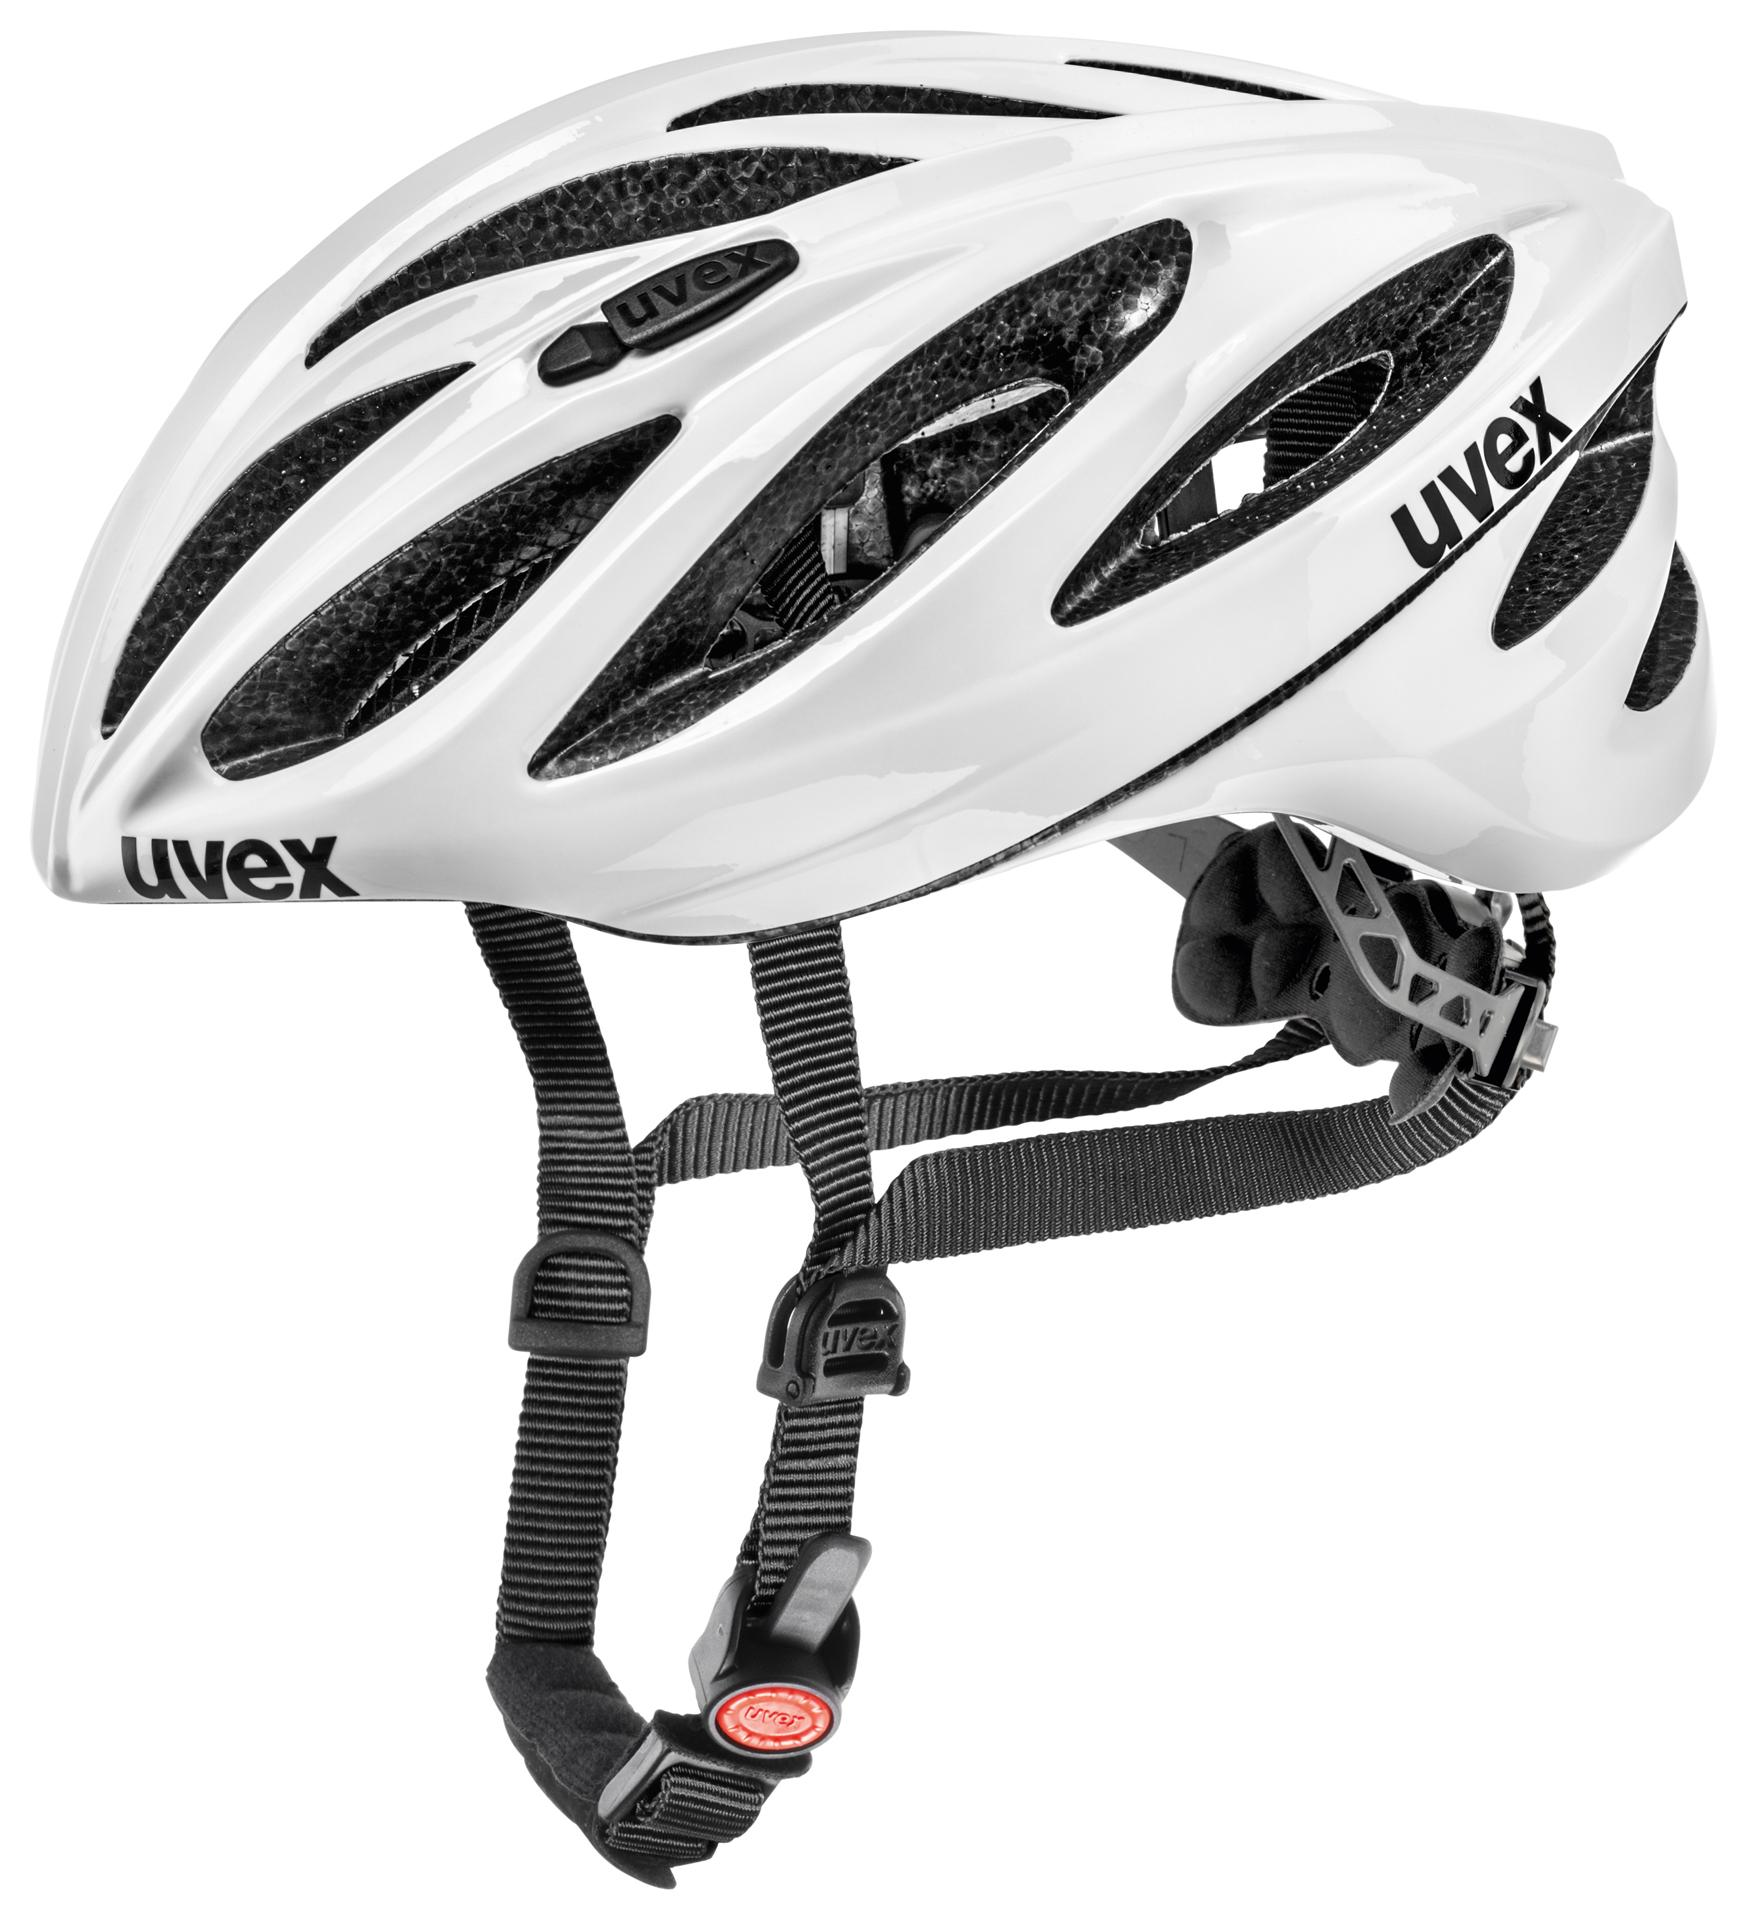 Uvex Fietshelm unisex Wit  / UV Boss Race White